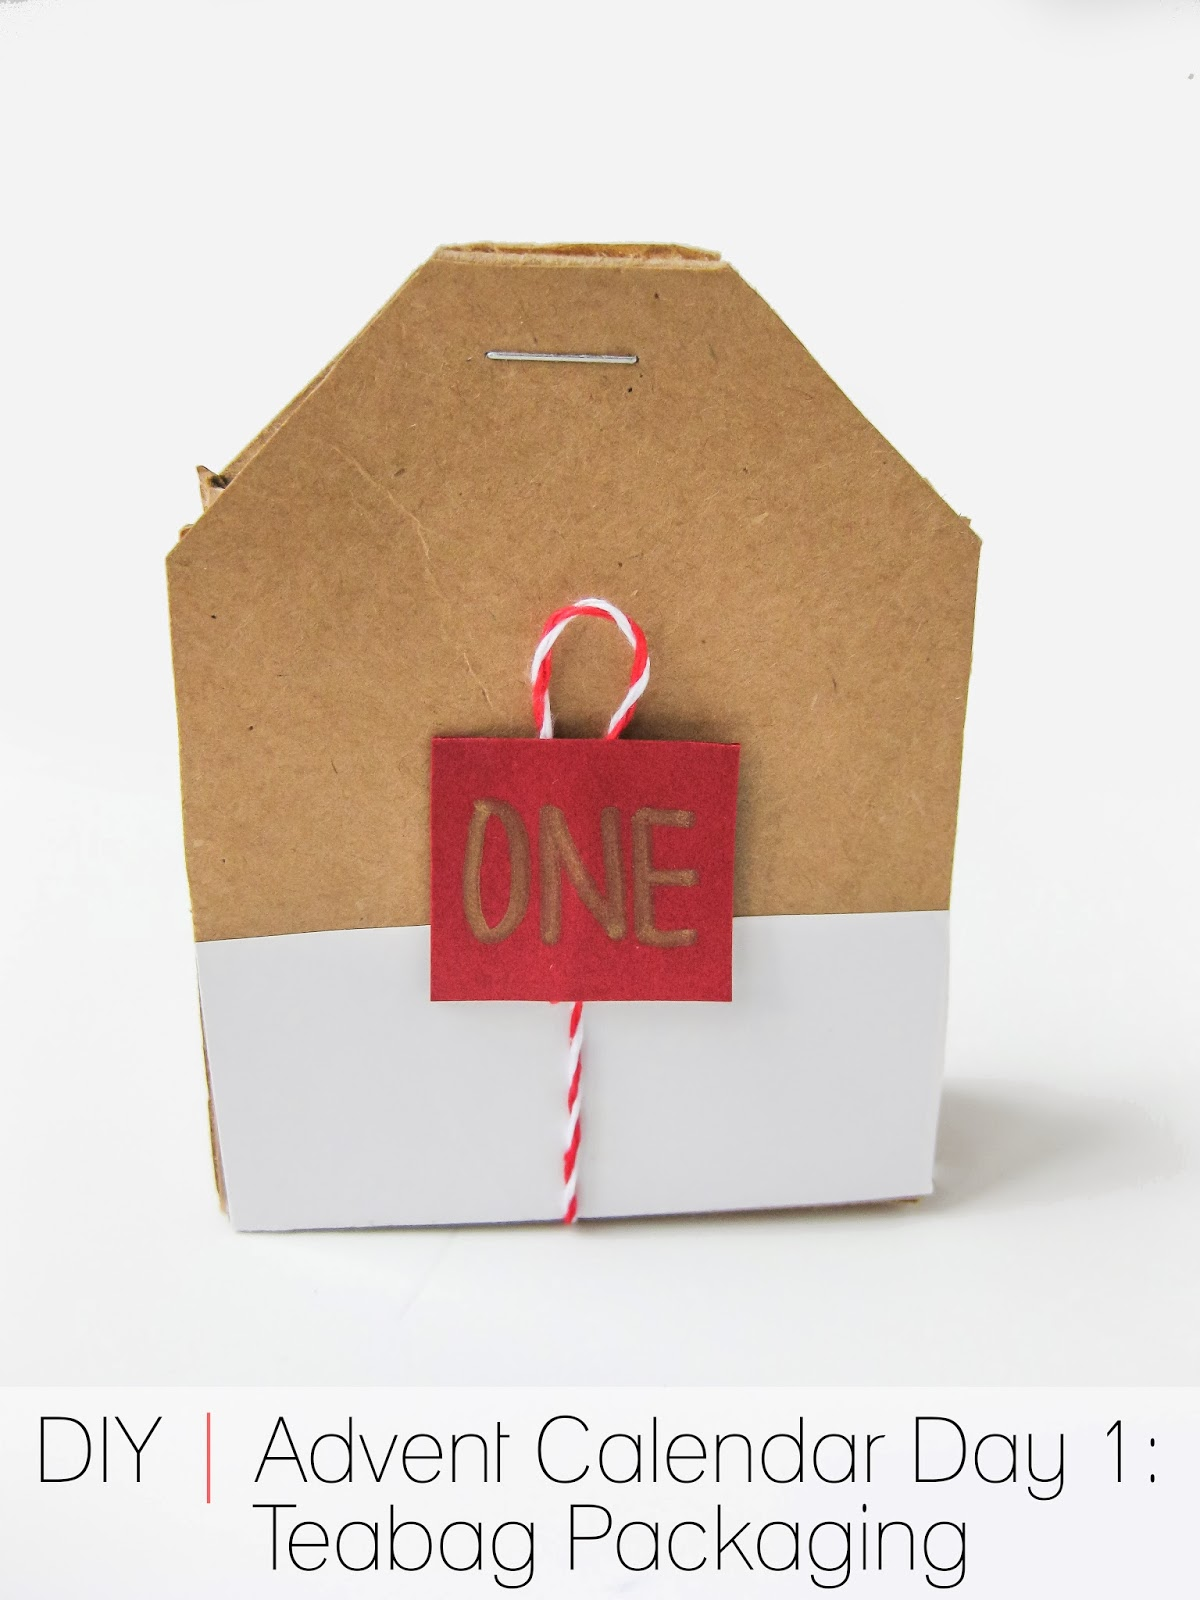 Calendar Advent Diy : Cafe craftea diy advent calendar day tea bag packaging